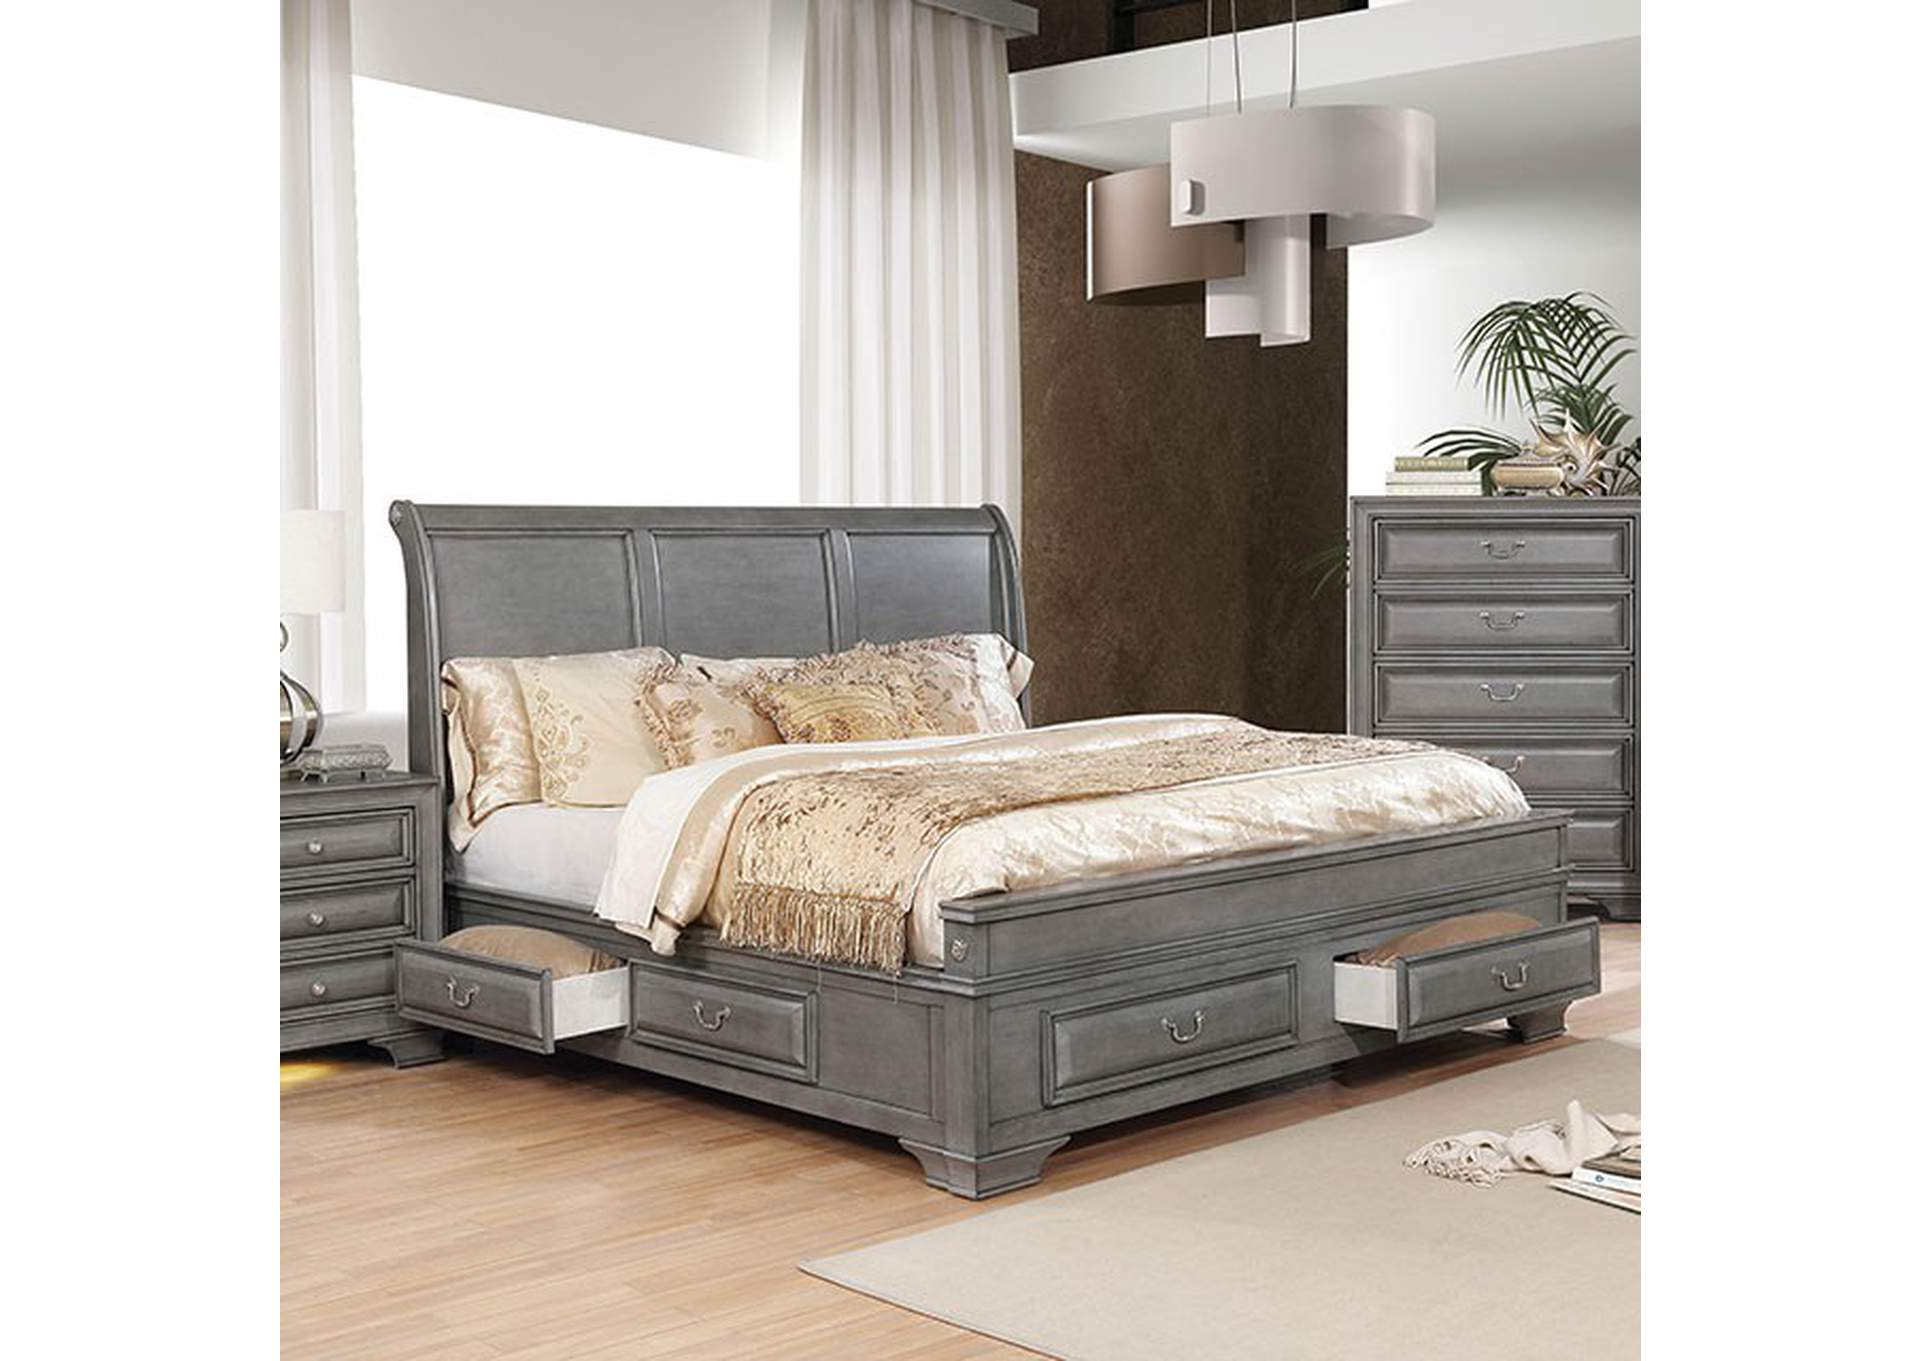 Brandt Gray Queen Bed,Furniture of America